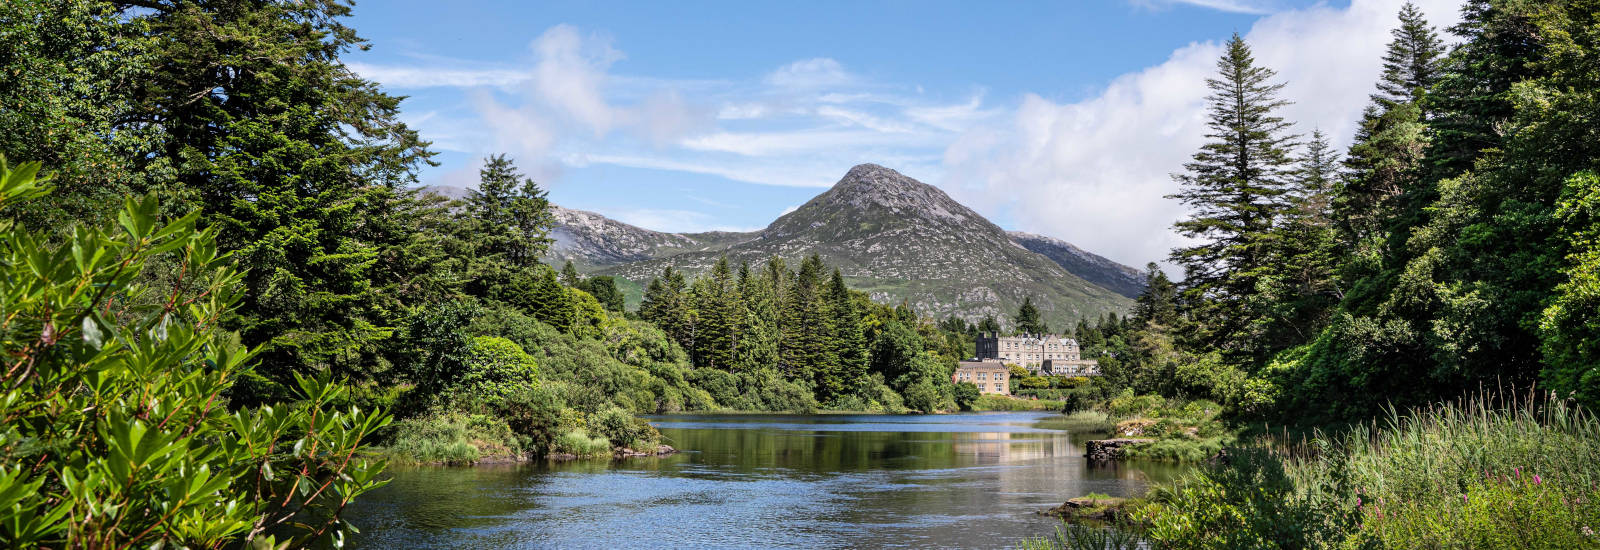 #BallynahinchMemories | Ballynahinch Castle